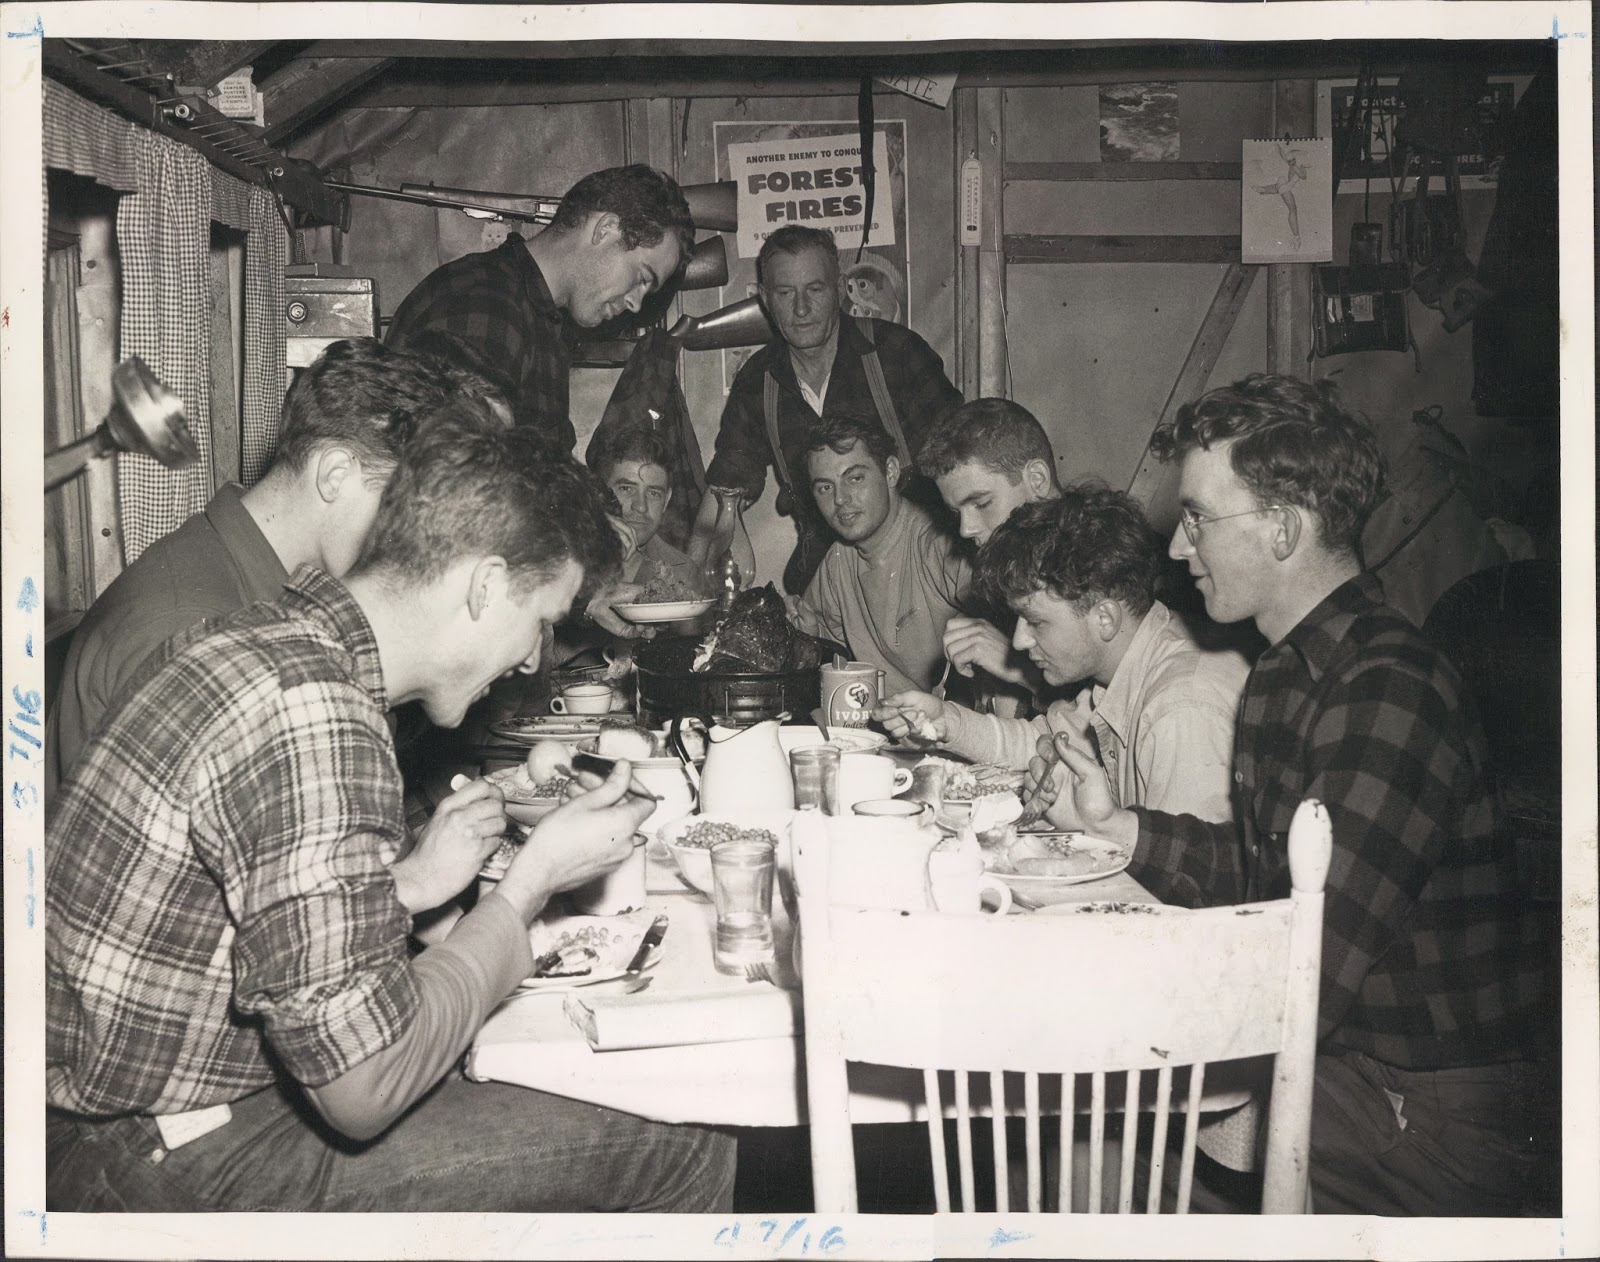 A black and white photograph of a group of men crowded around a dinner table for a meal.